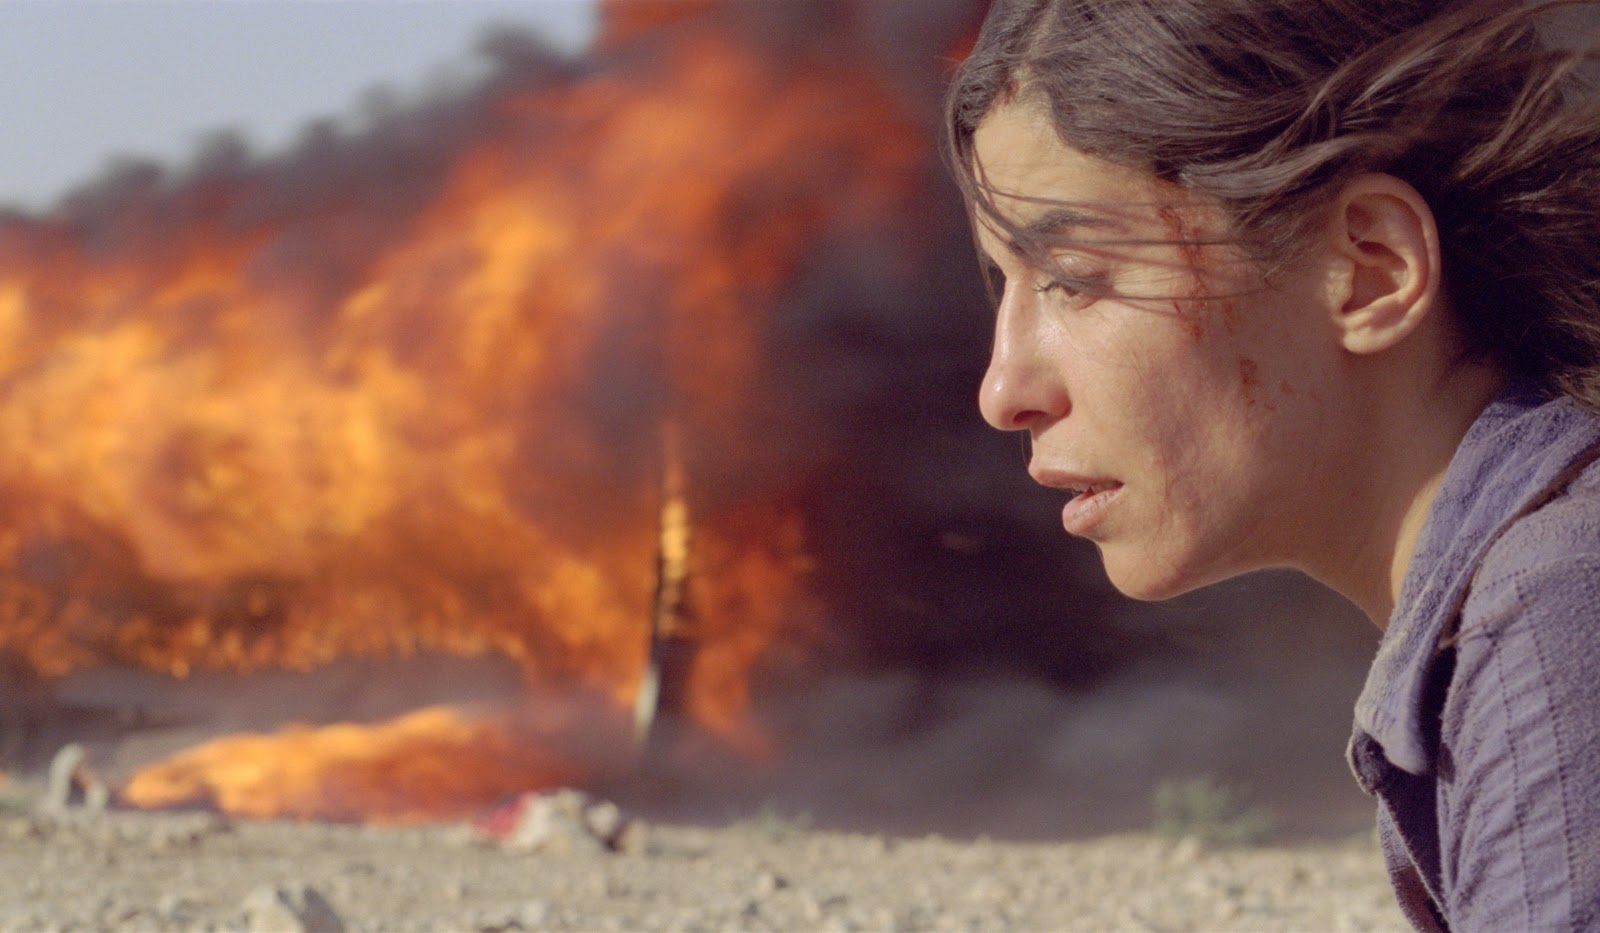 « Incendies », ou la pudeur d'un drame incandescent